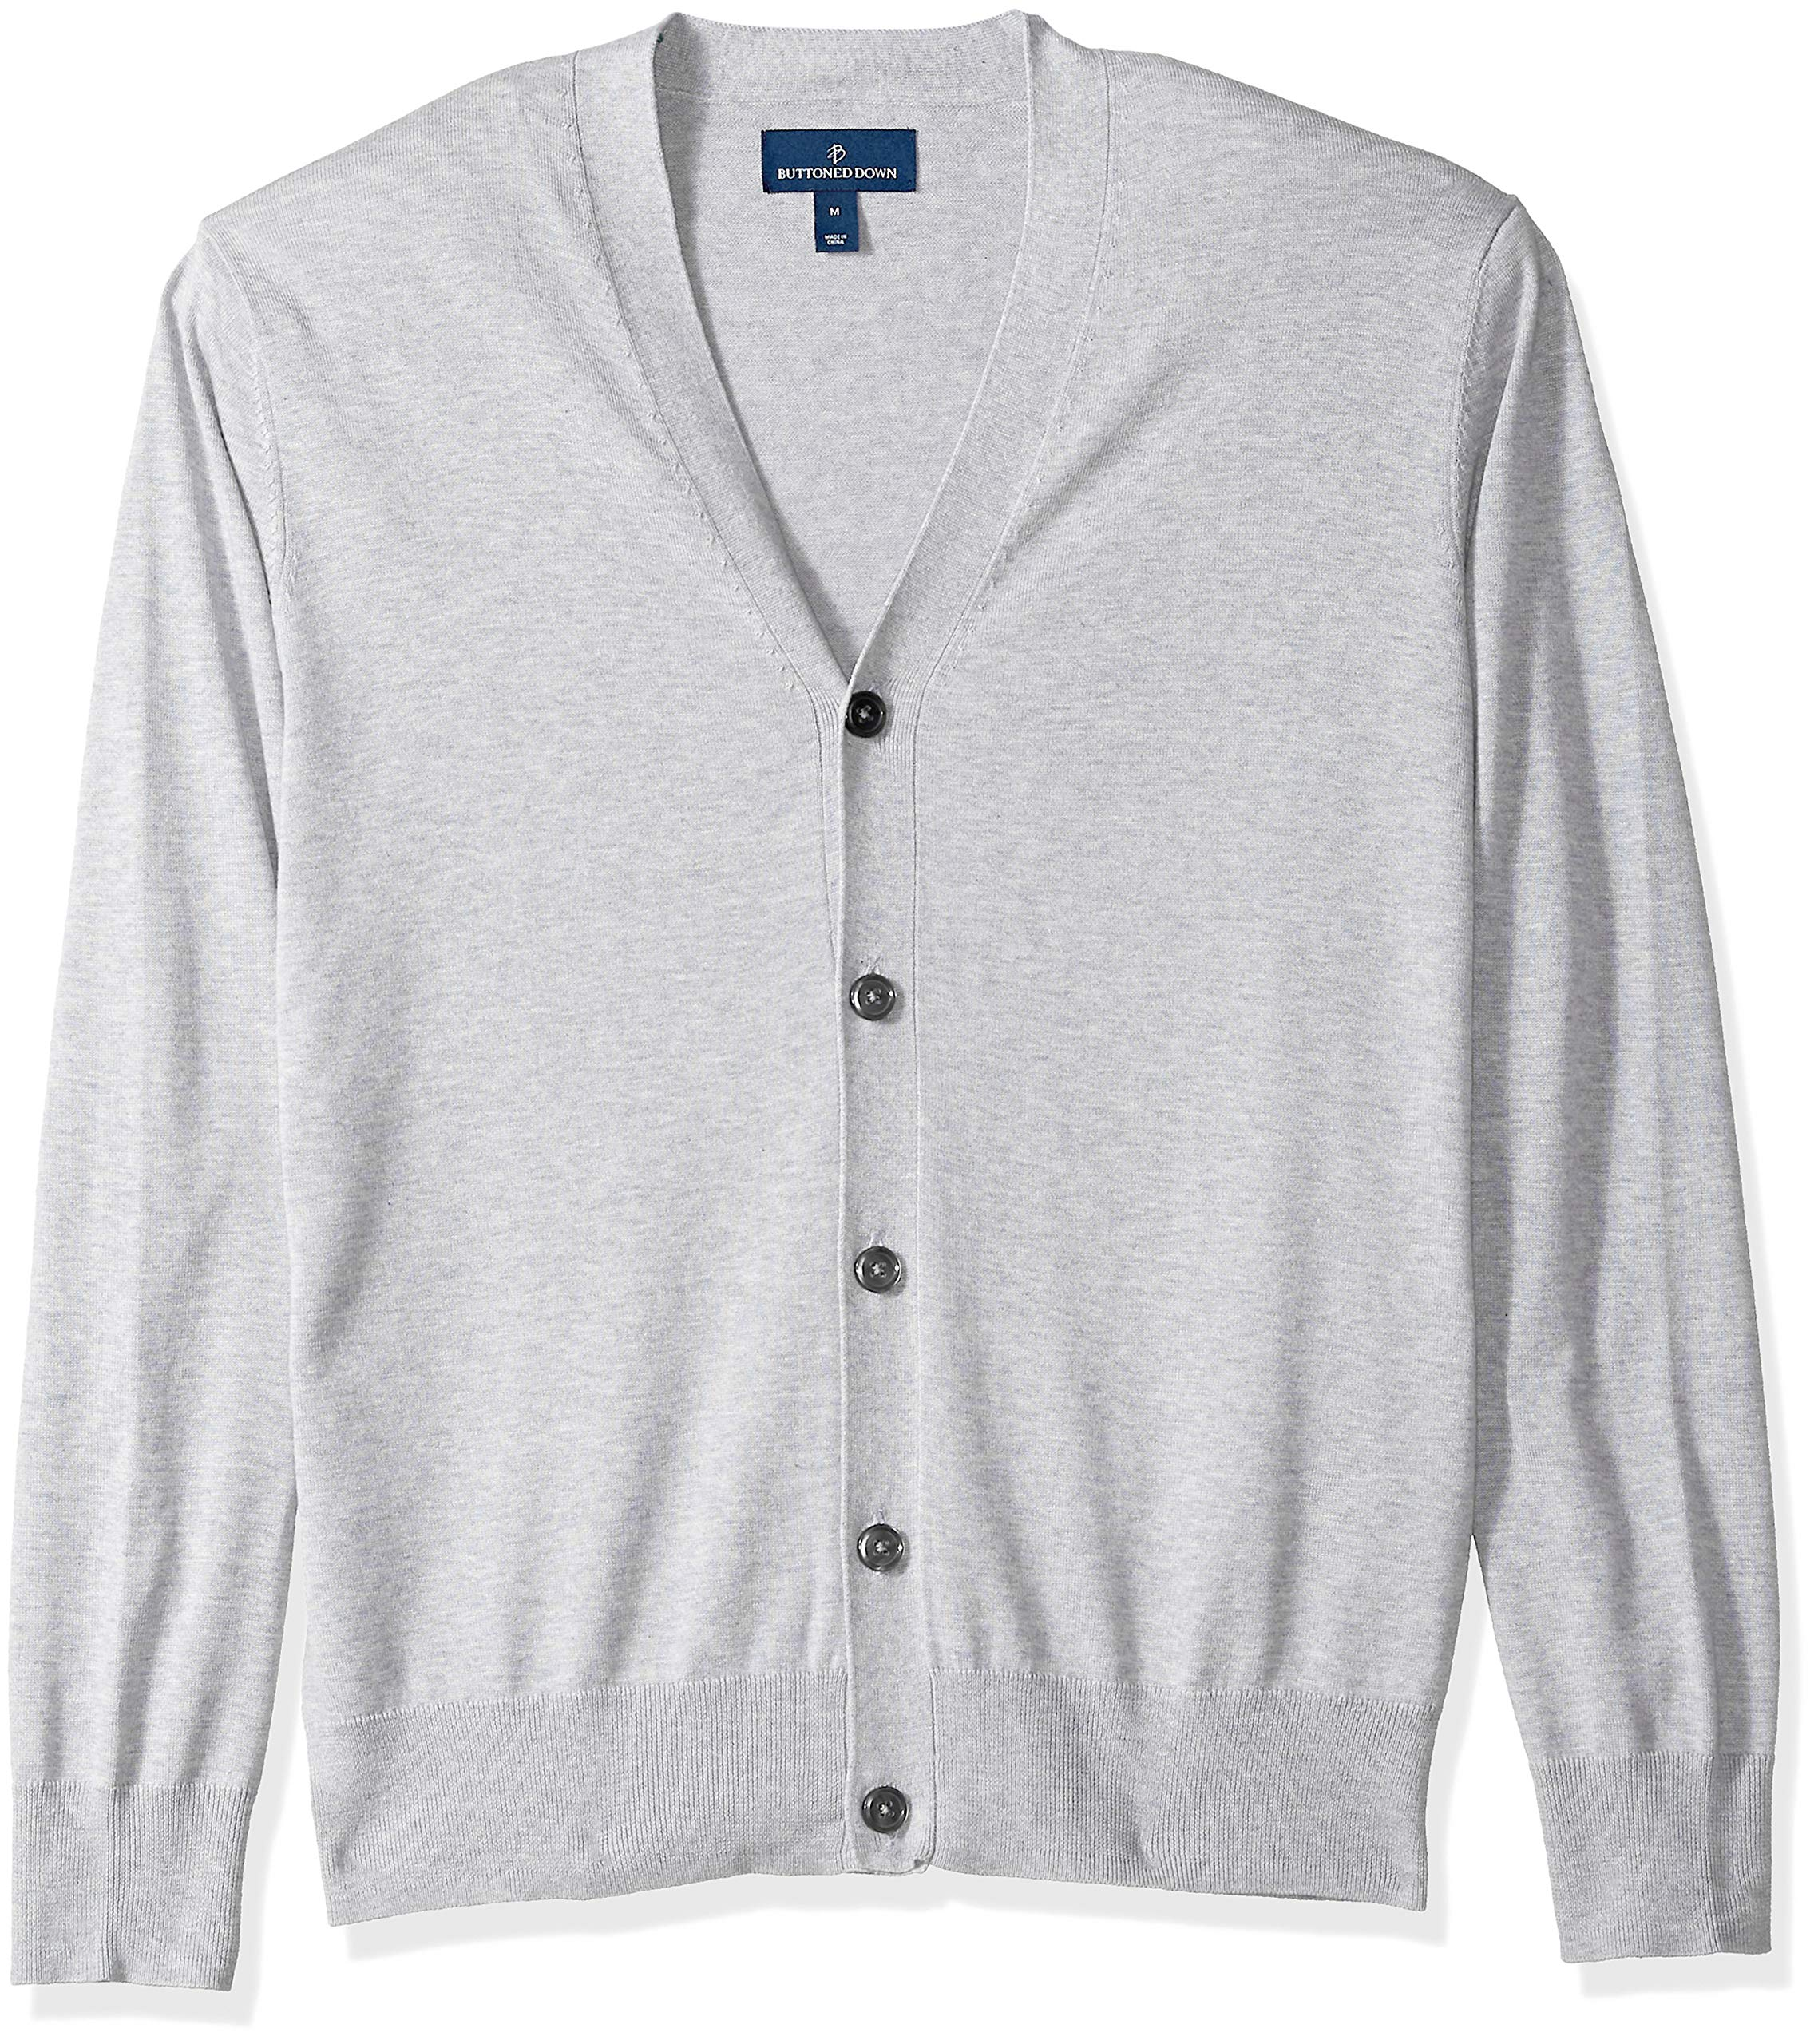 BUTTONED DOWN Men's Supima Cotton Lightweight Cardigan Sweater, grey, Large